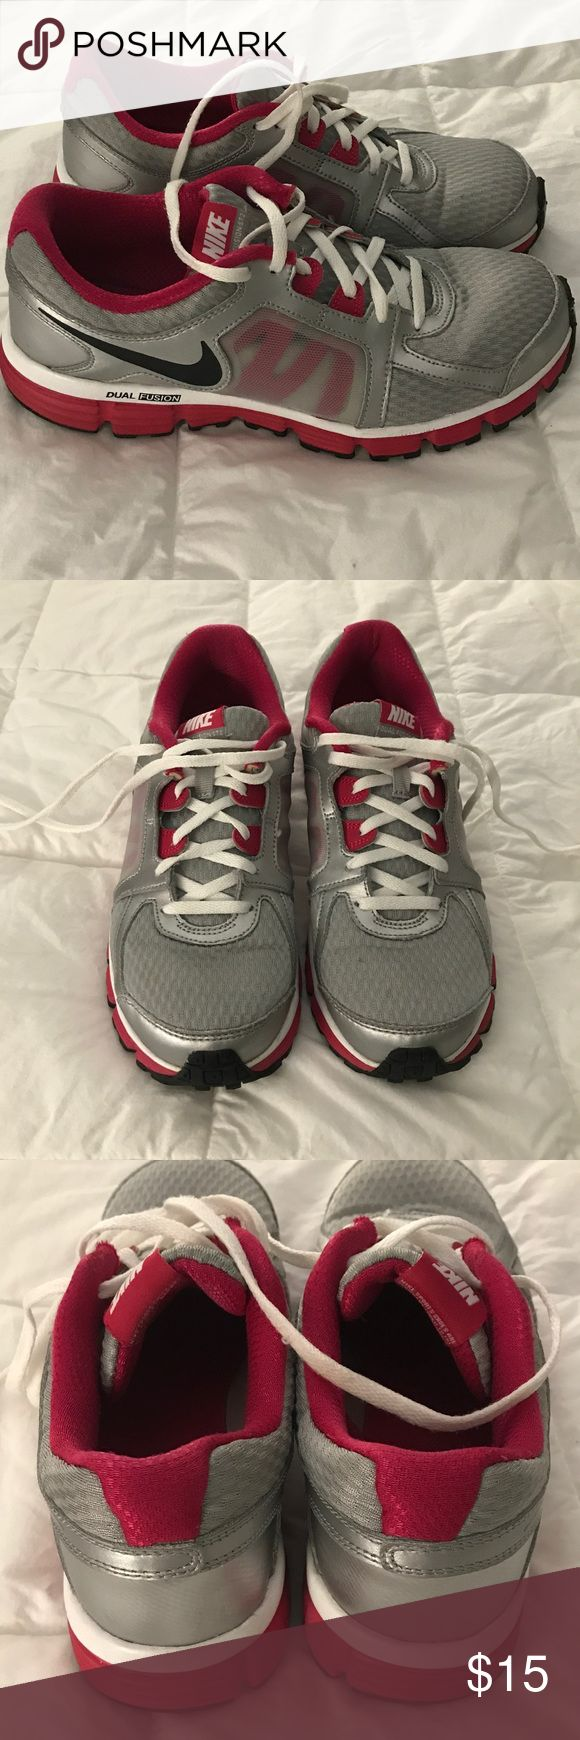 Nike dual fusion tennis shoes. Lightly worn. Nike dual fusion tennis shoes. Lightly worn. EUC size 6 youth but fits women's size 7.5 Nike Shoes Sneakers